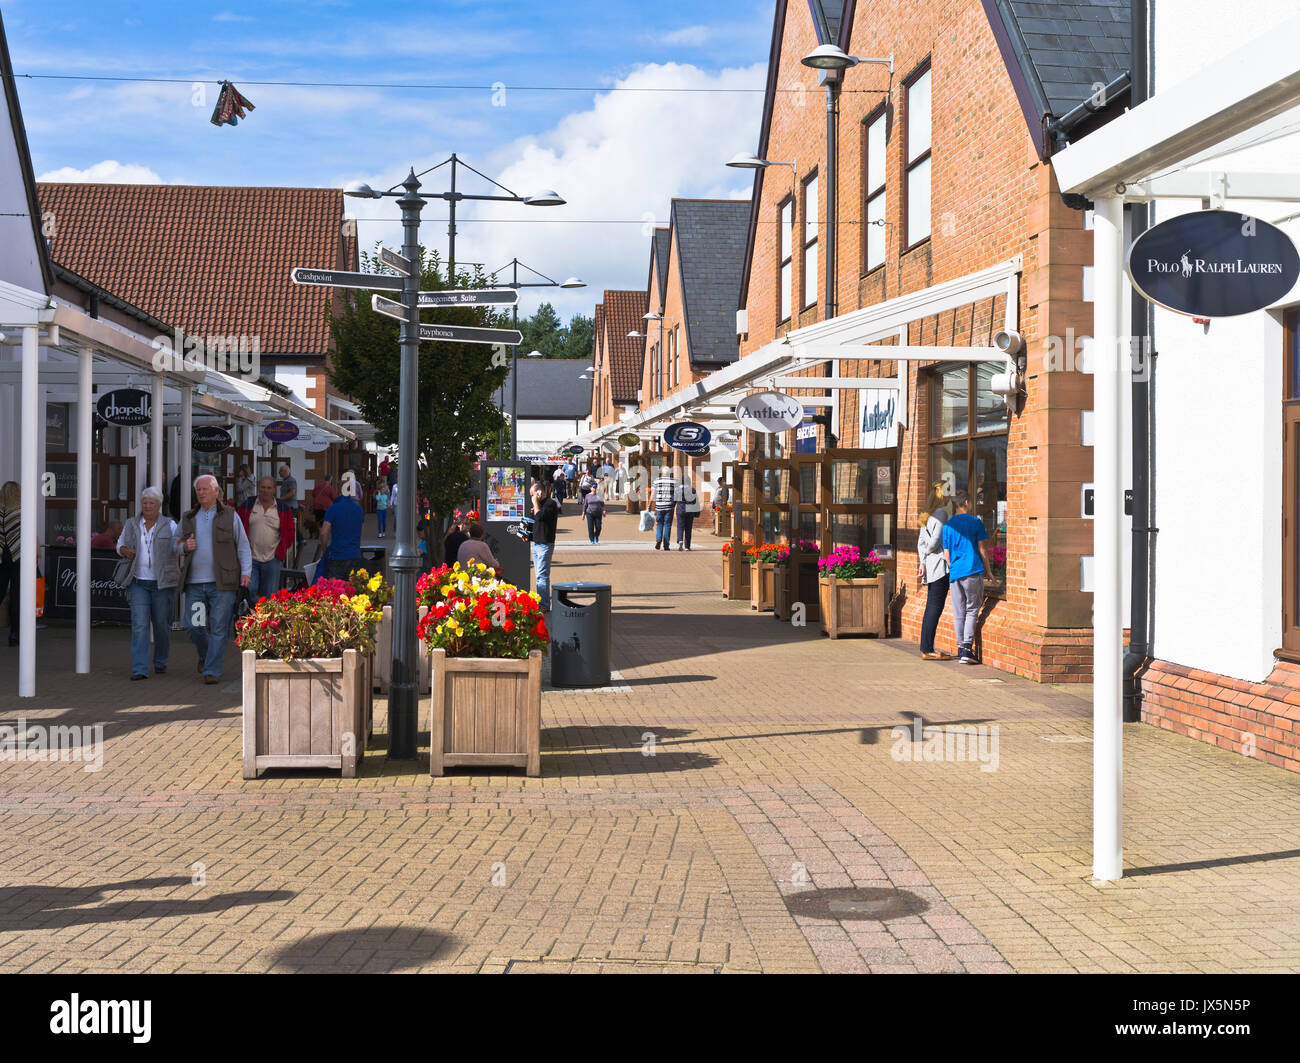 dh Gateway Outlet Village GRETNA GREEN DUMFRIES Shoppers mall shops outlets  retail shopping scotland f32c642c34